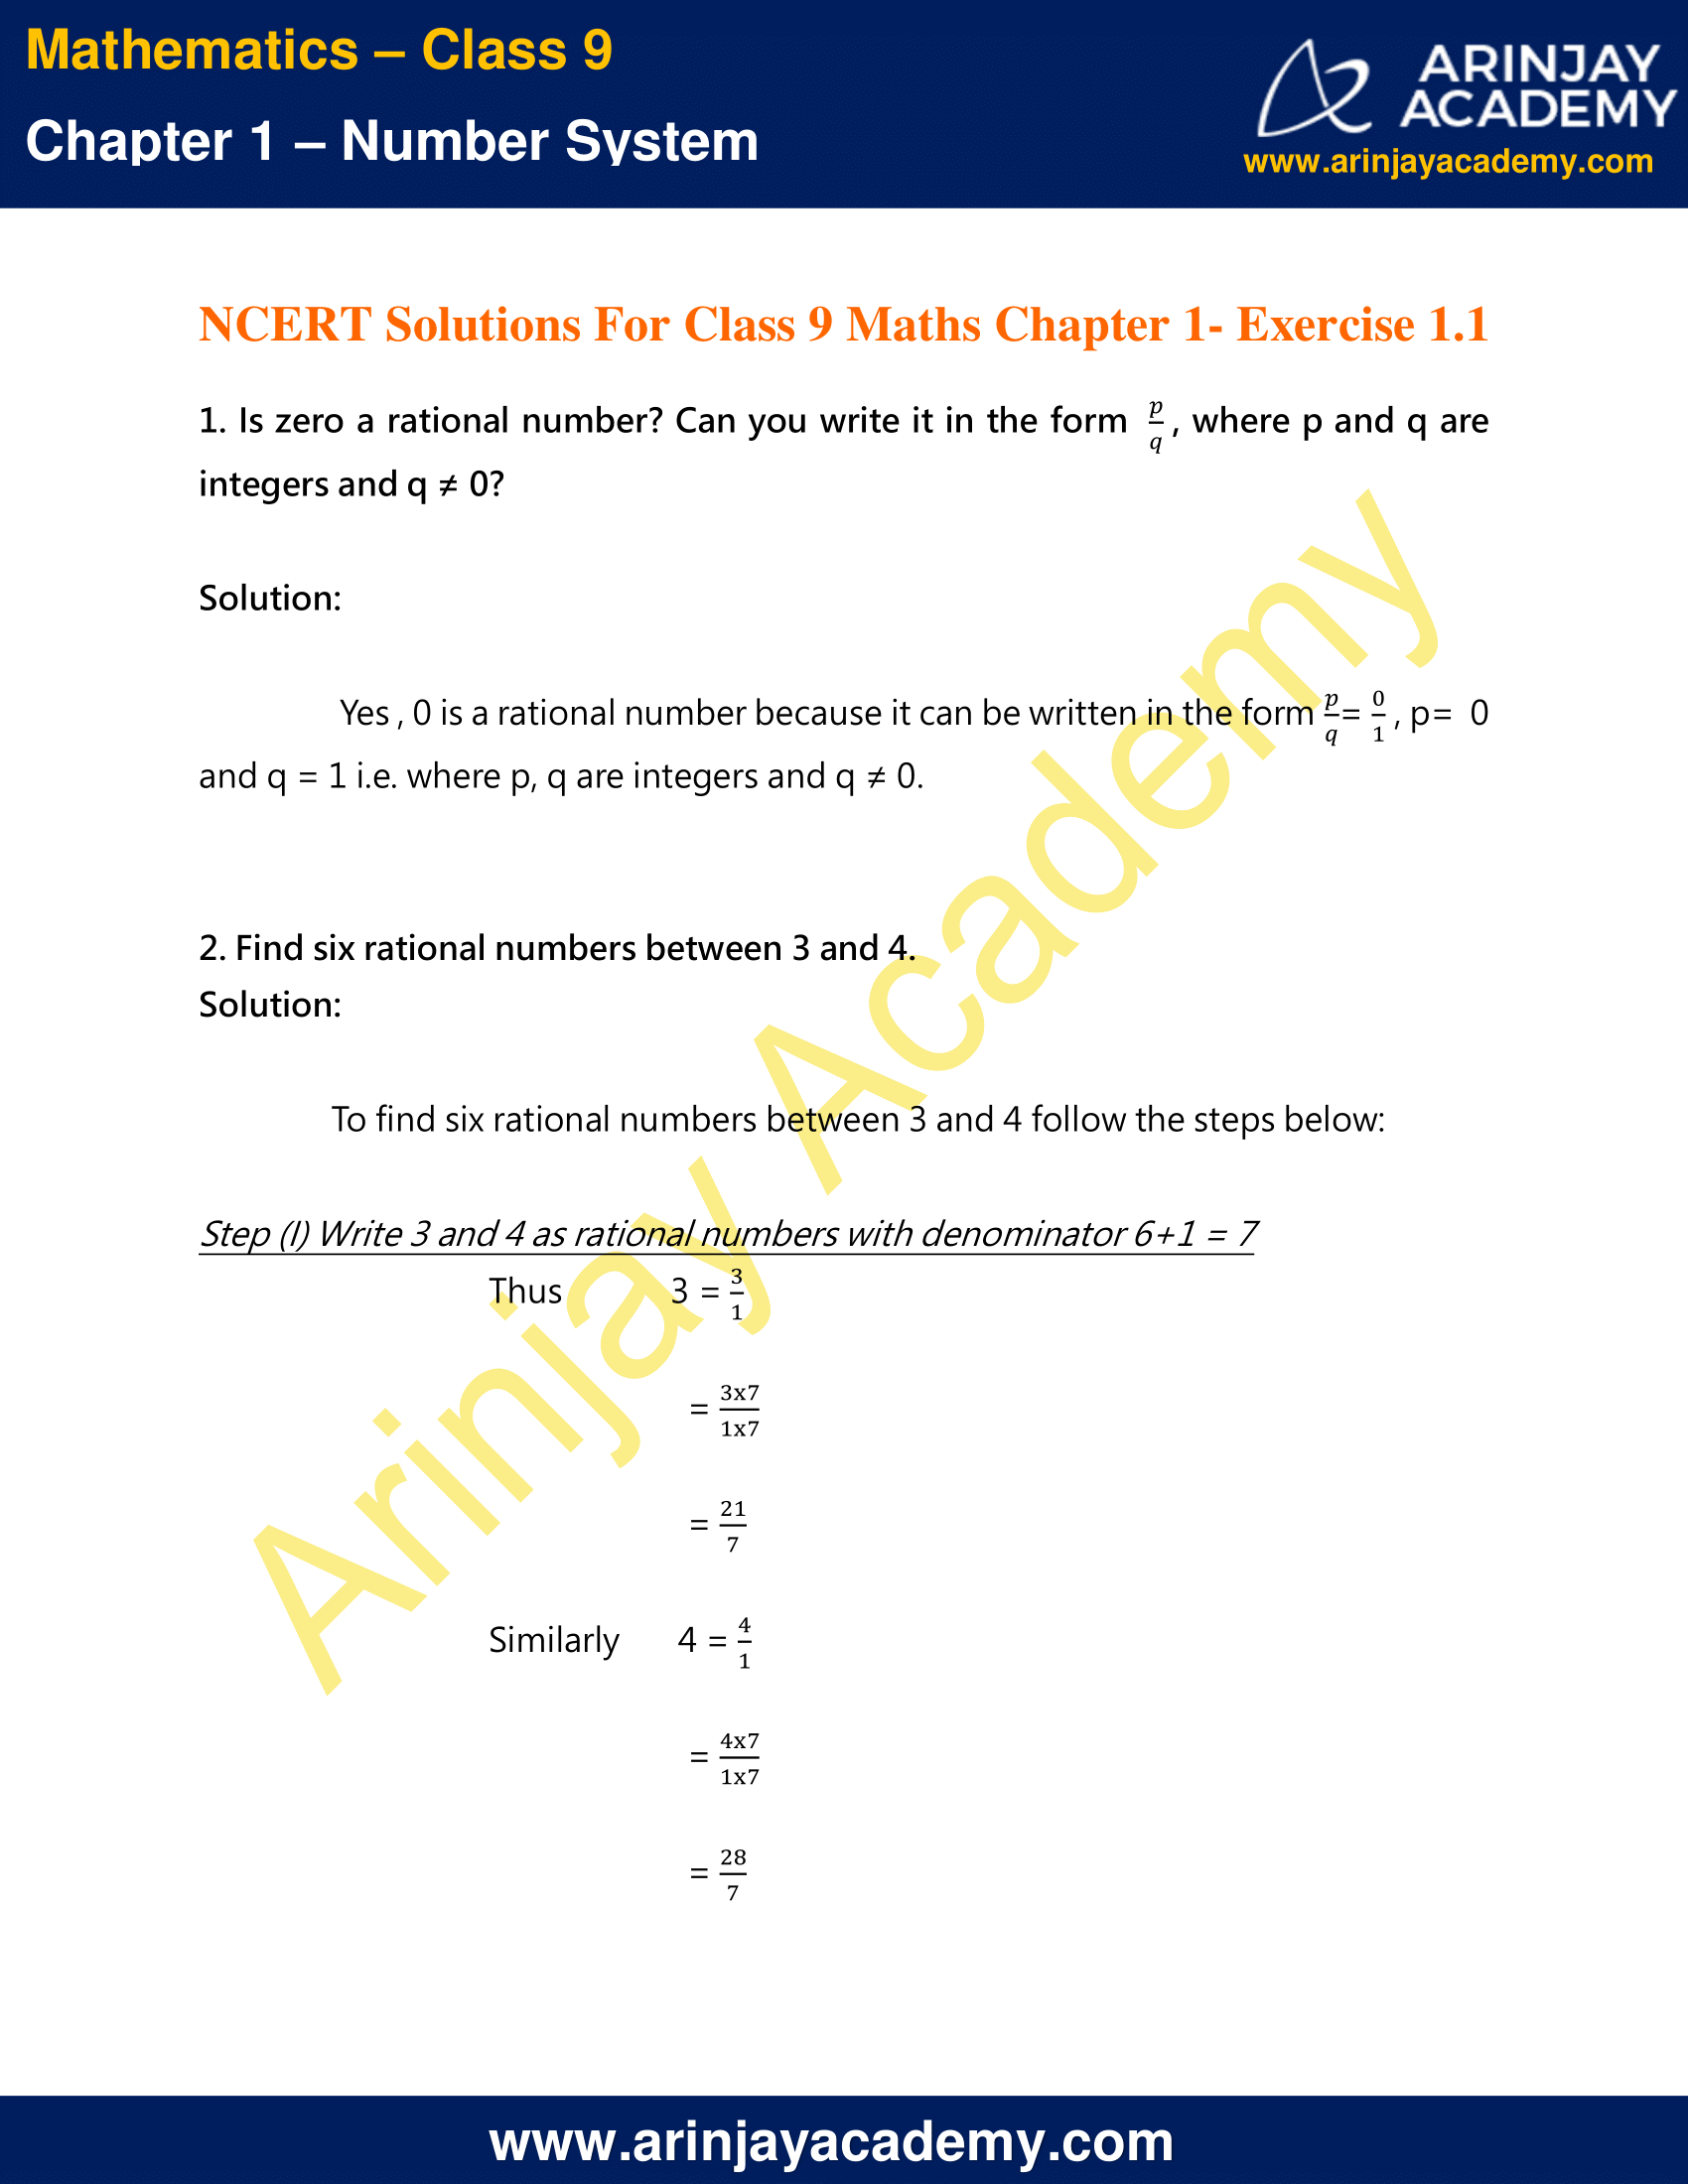 NCERT Solutions For Class 9 Maths Chapter 1 Exercise 1.1 image 1